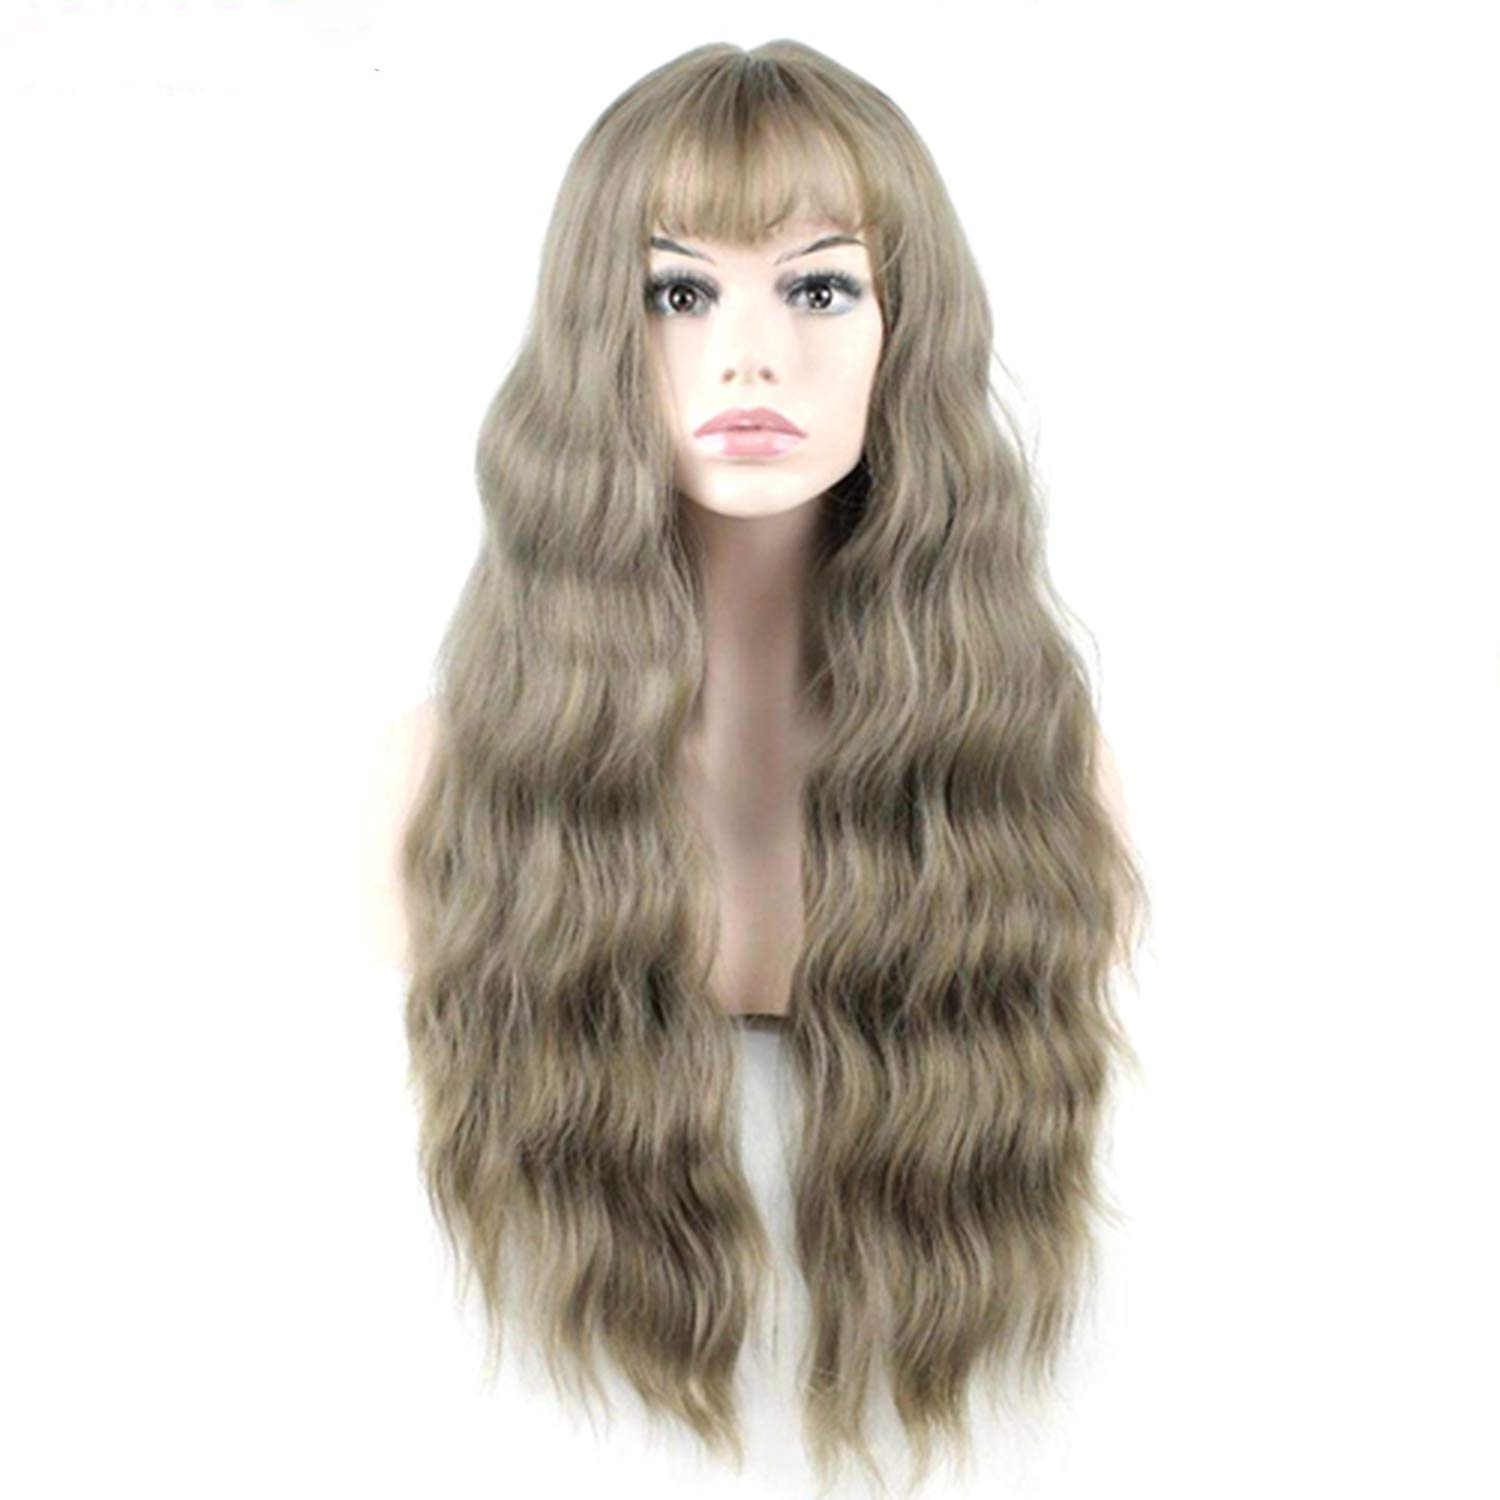 Jie yi long two department store; Ultra thin bangs Long Curly Wig Synthetic Wigs gray Black Pink 26inch High Temperature Fiber women wig-in Synthetic None,Muli Color,26inches